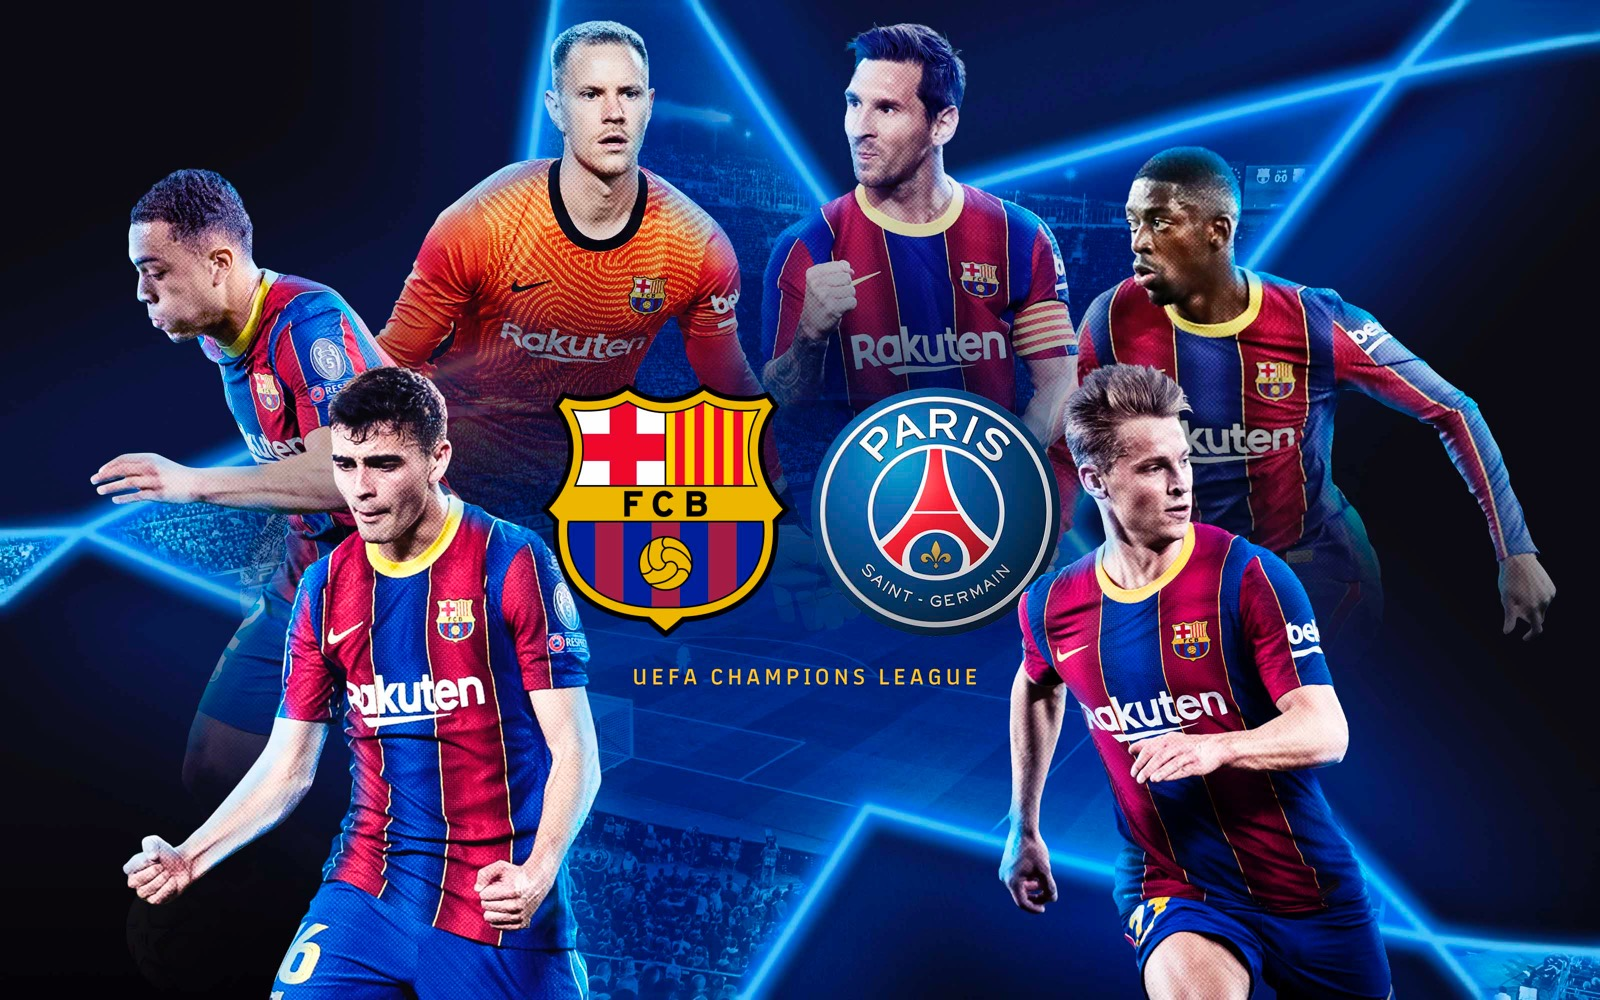 Fc Barcelona To Play Paris Saint Germain In Champions League Last 16